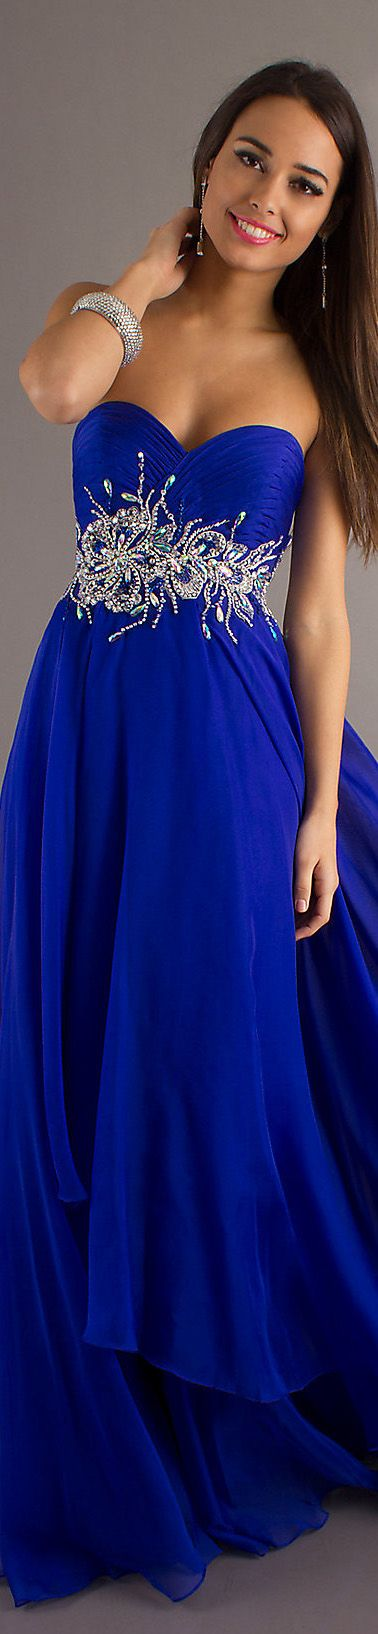 w/o glitter, just plain blue...  Formal long dress #strapless